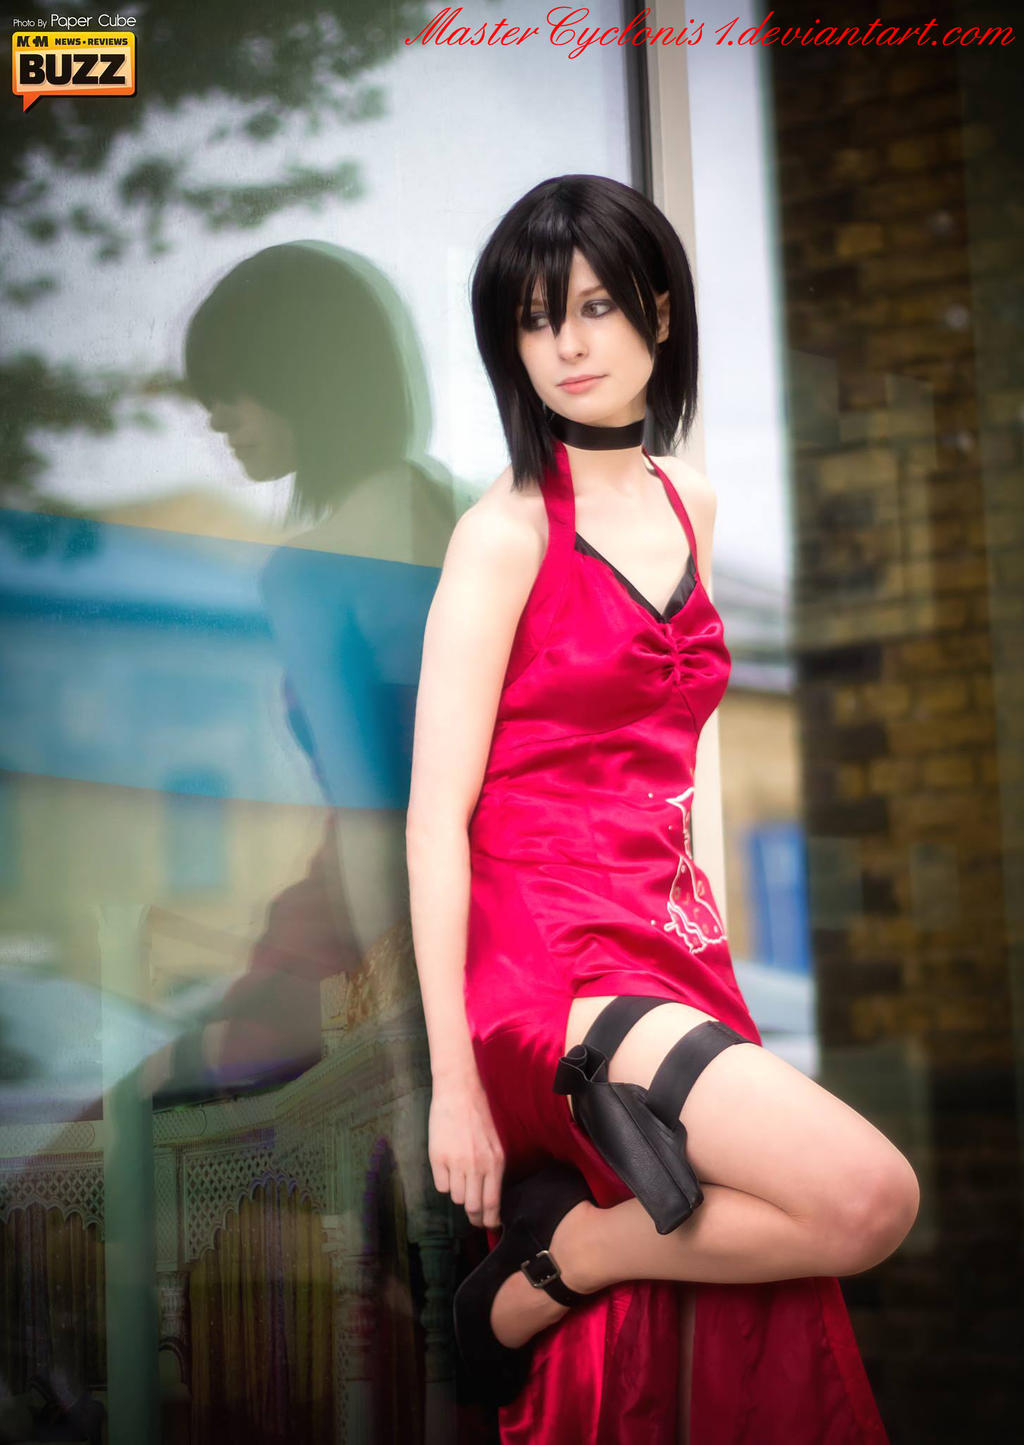 London MCM: Ada Wong Resident Evil 4 by MasterCyclonis1